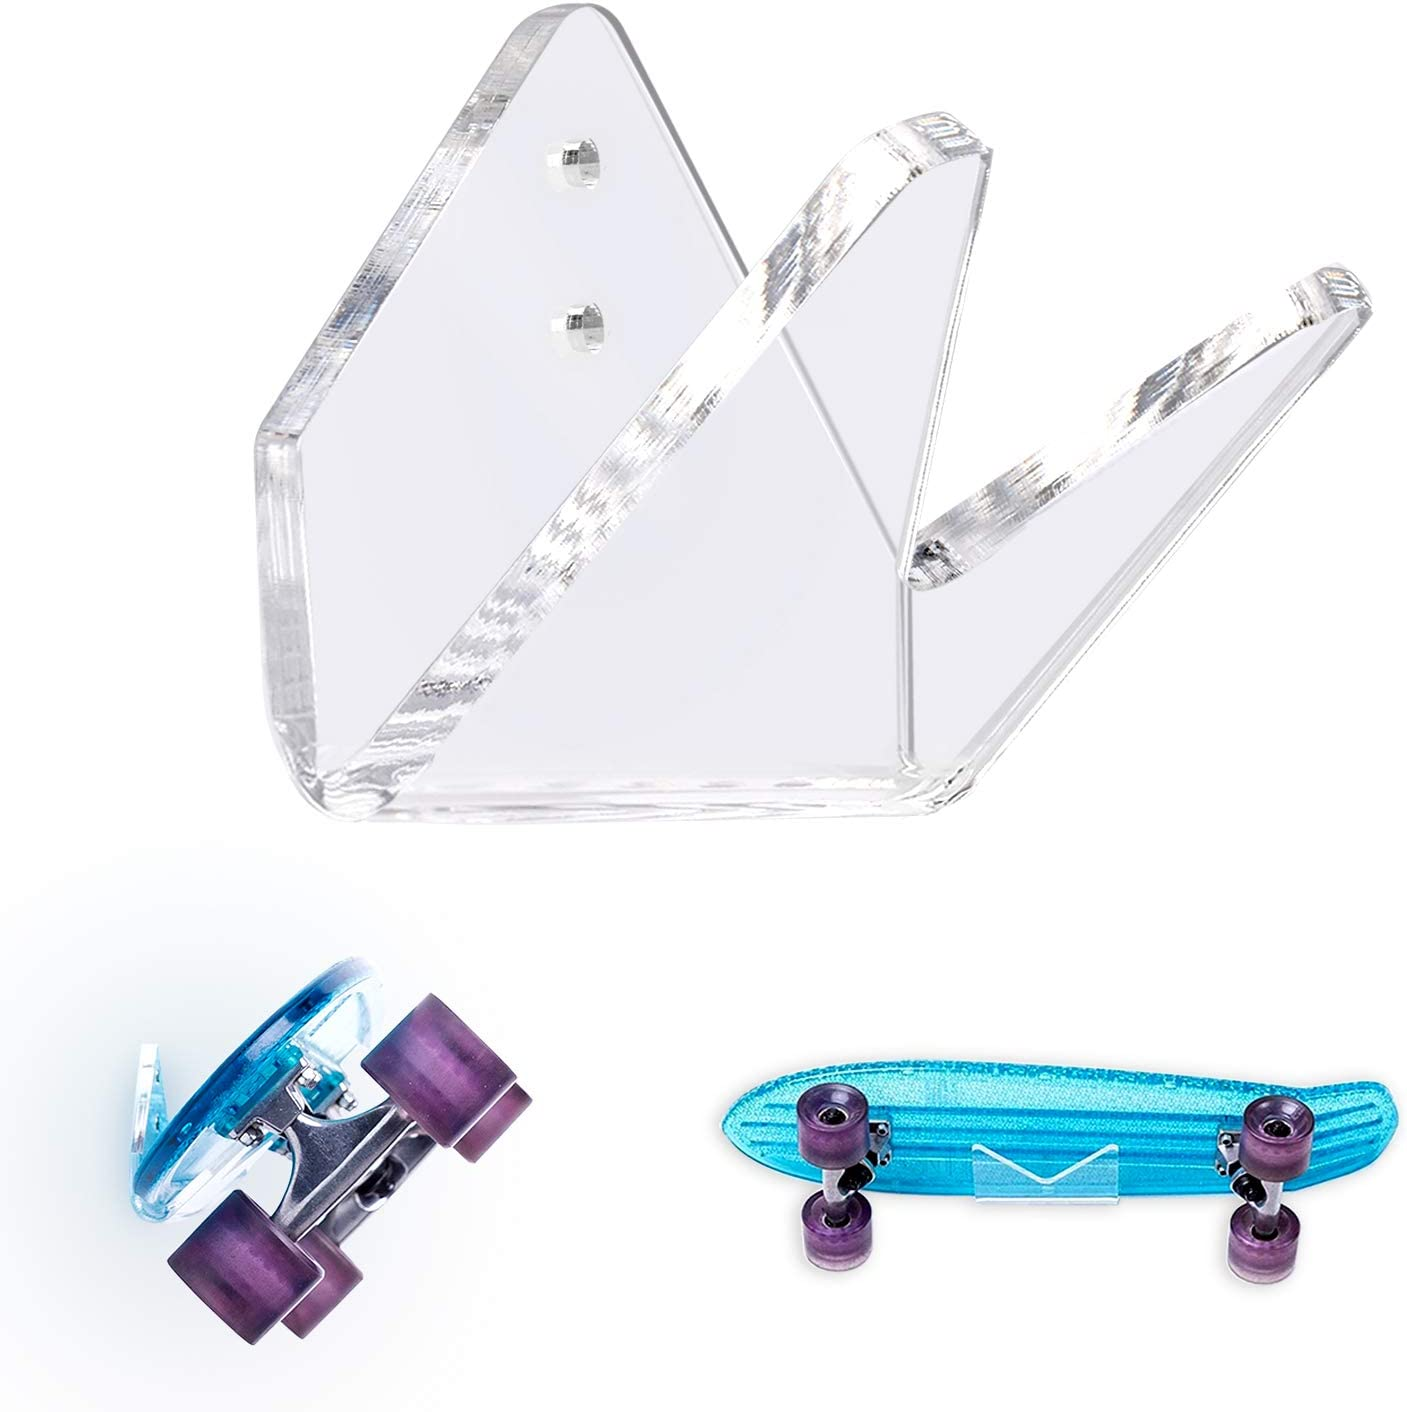 Snowboards Skis TOBWOLF Skateboard Wall Mount Display Rack Clear Acrylic Wall Hanger Bracket Invisible Storage Holder for Longboard Water Skis and Electric Skateboard Triangular